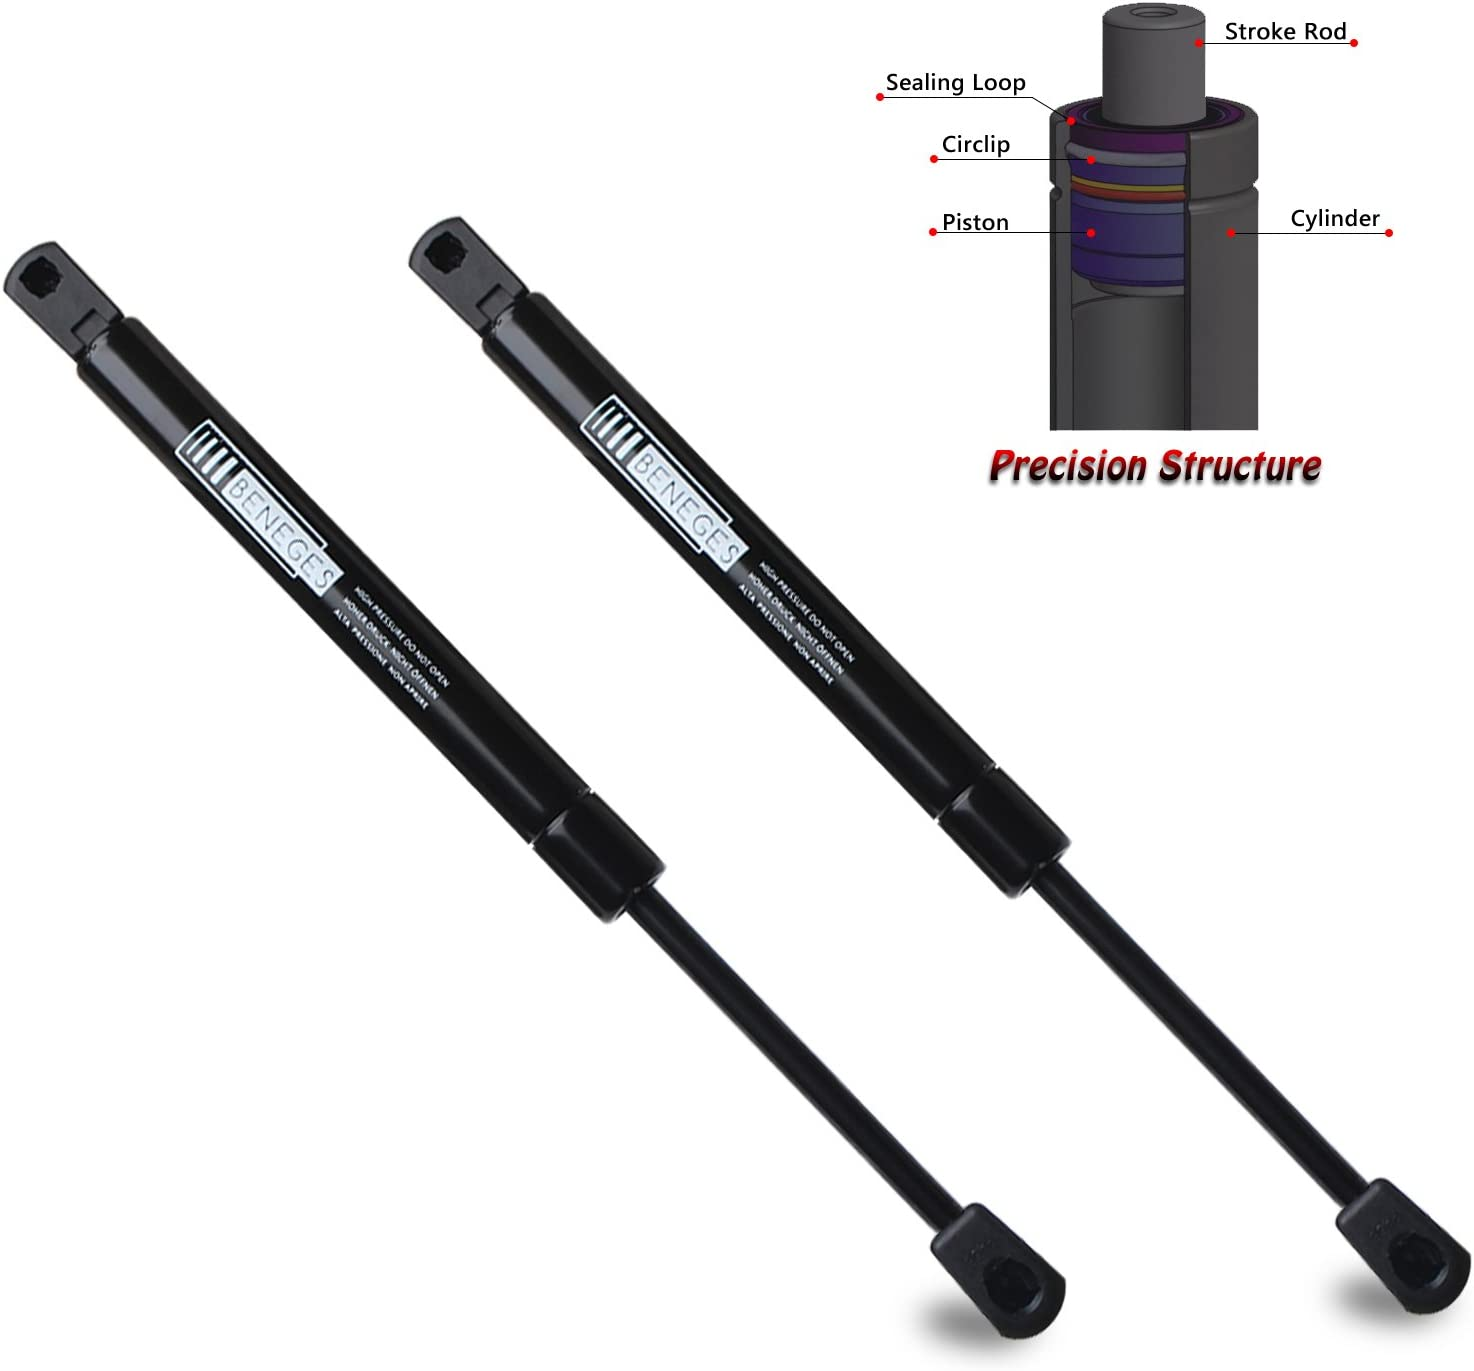 Beneges 2PCs Front Hood Lift Supports Compatible with 1997-2002 Ford Expedition 1997-1999 Ford F-250//F-250 XLT Hood Struts Shocks 1997-2004 Ford F-150// F-150 XLT